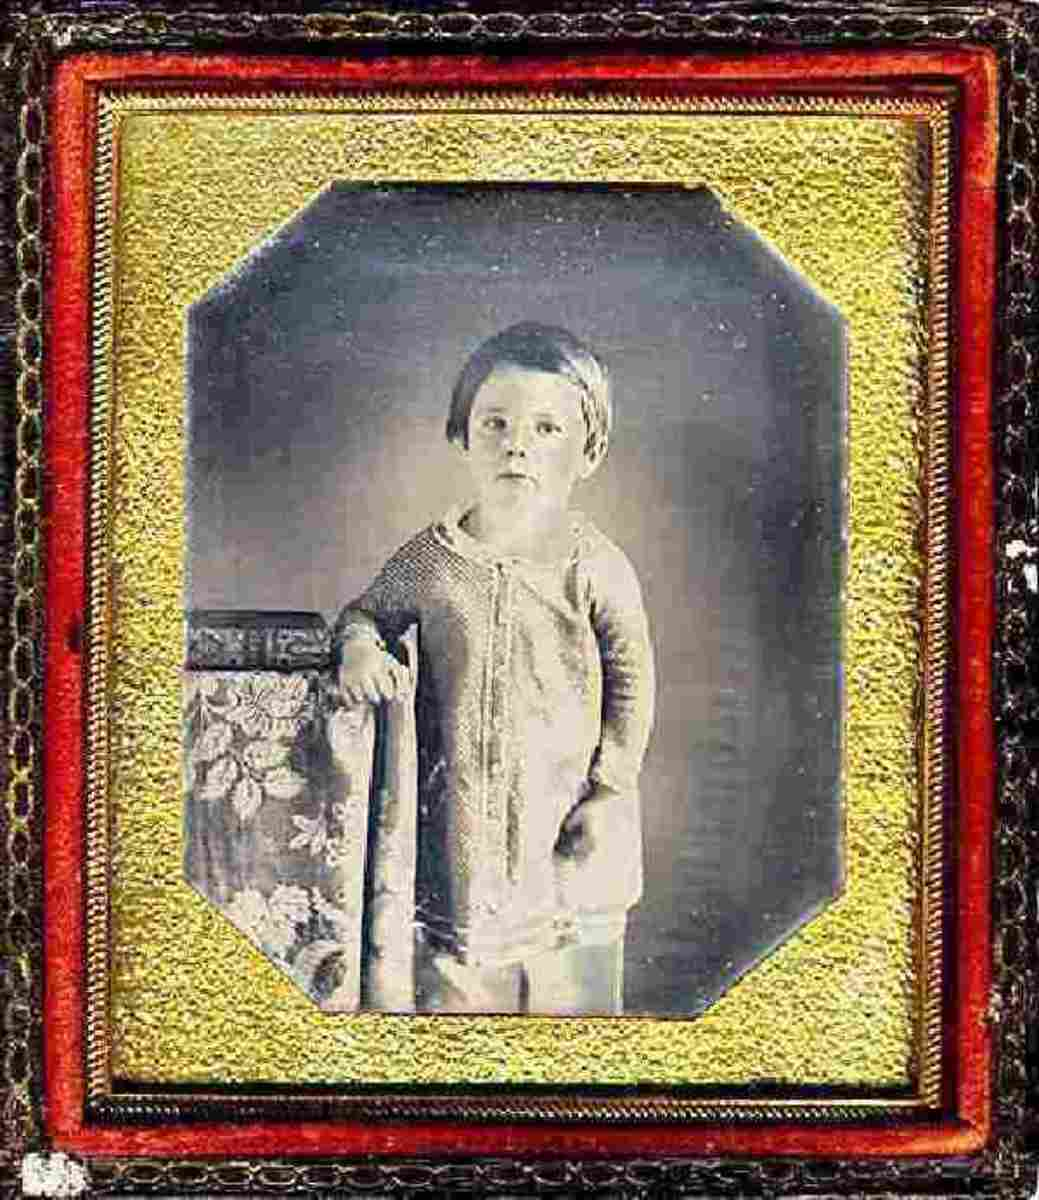 Photo of Edward Lincoln, the earliest photo of a presidential child taken about 1849.